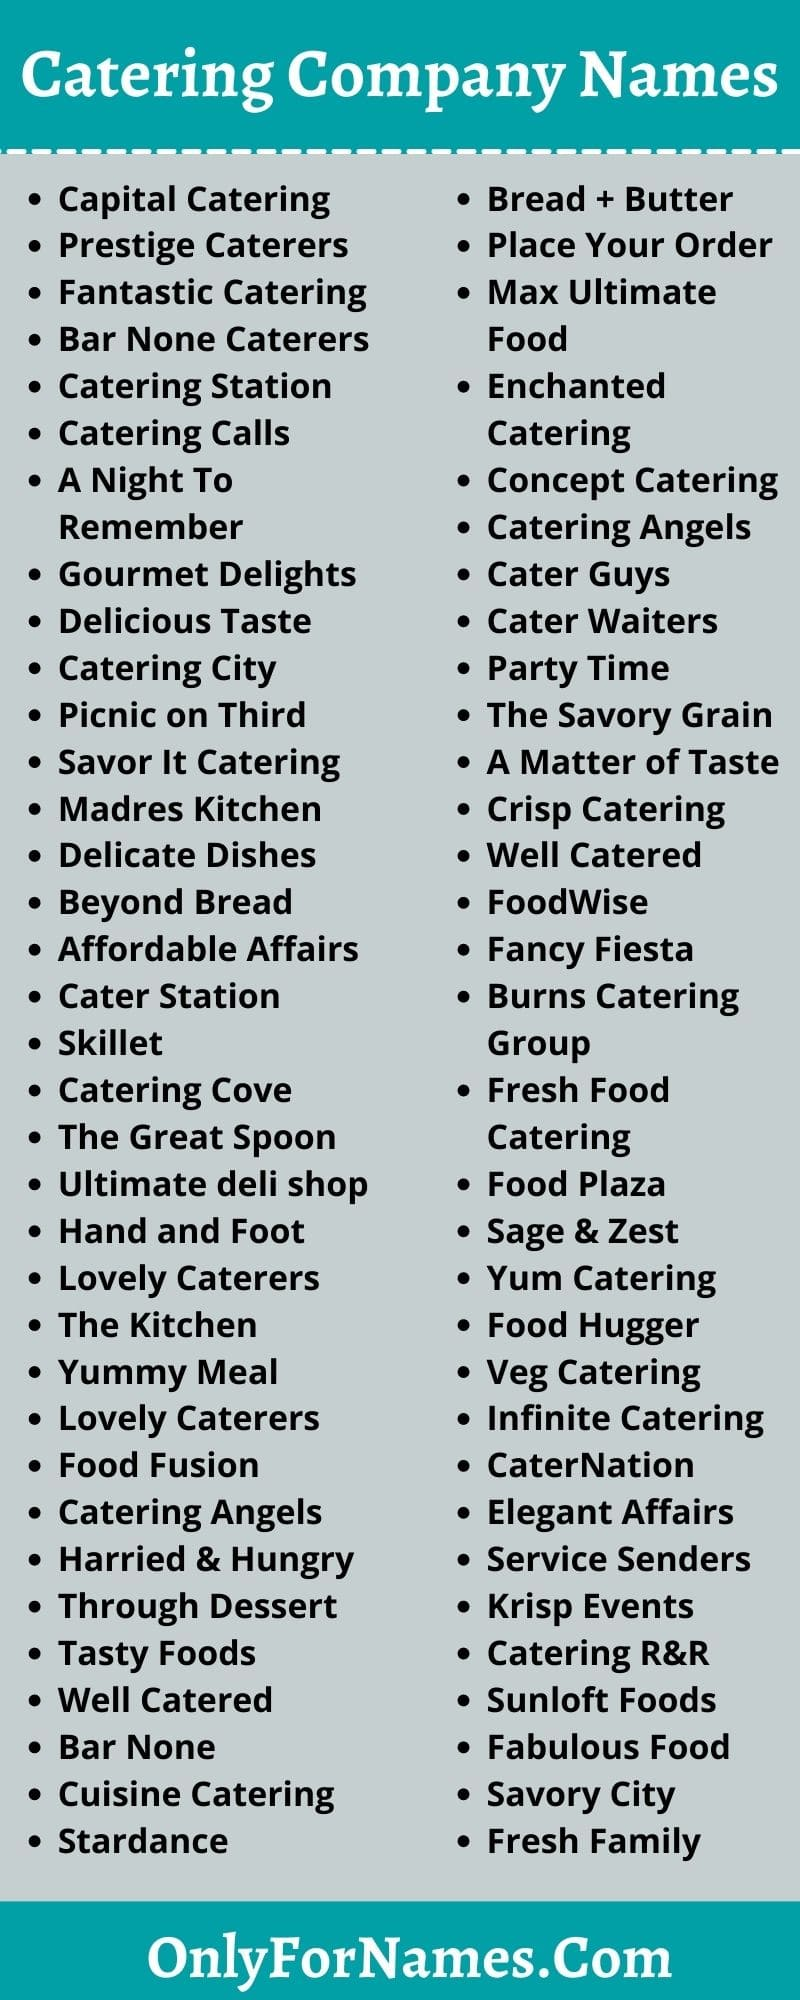 Catering Company Names